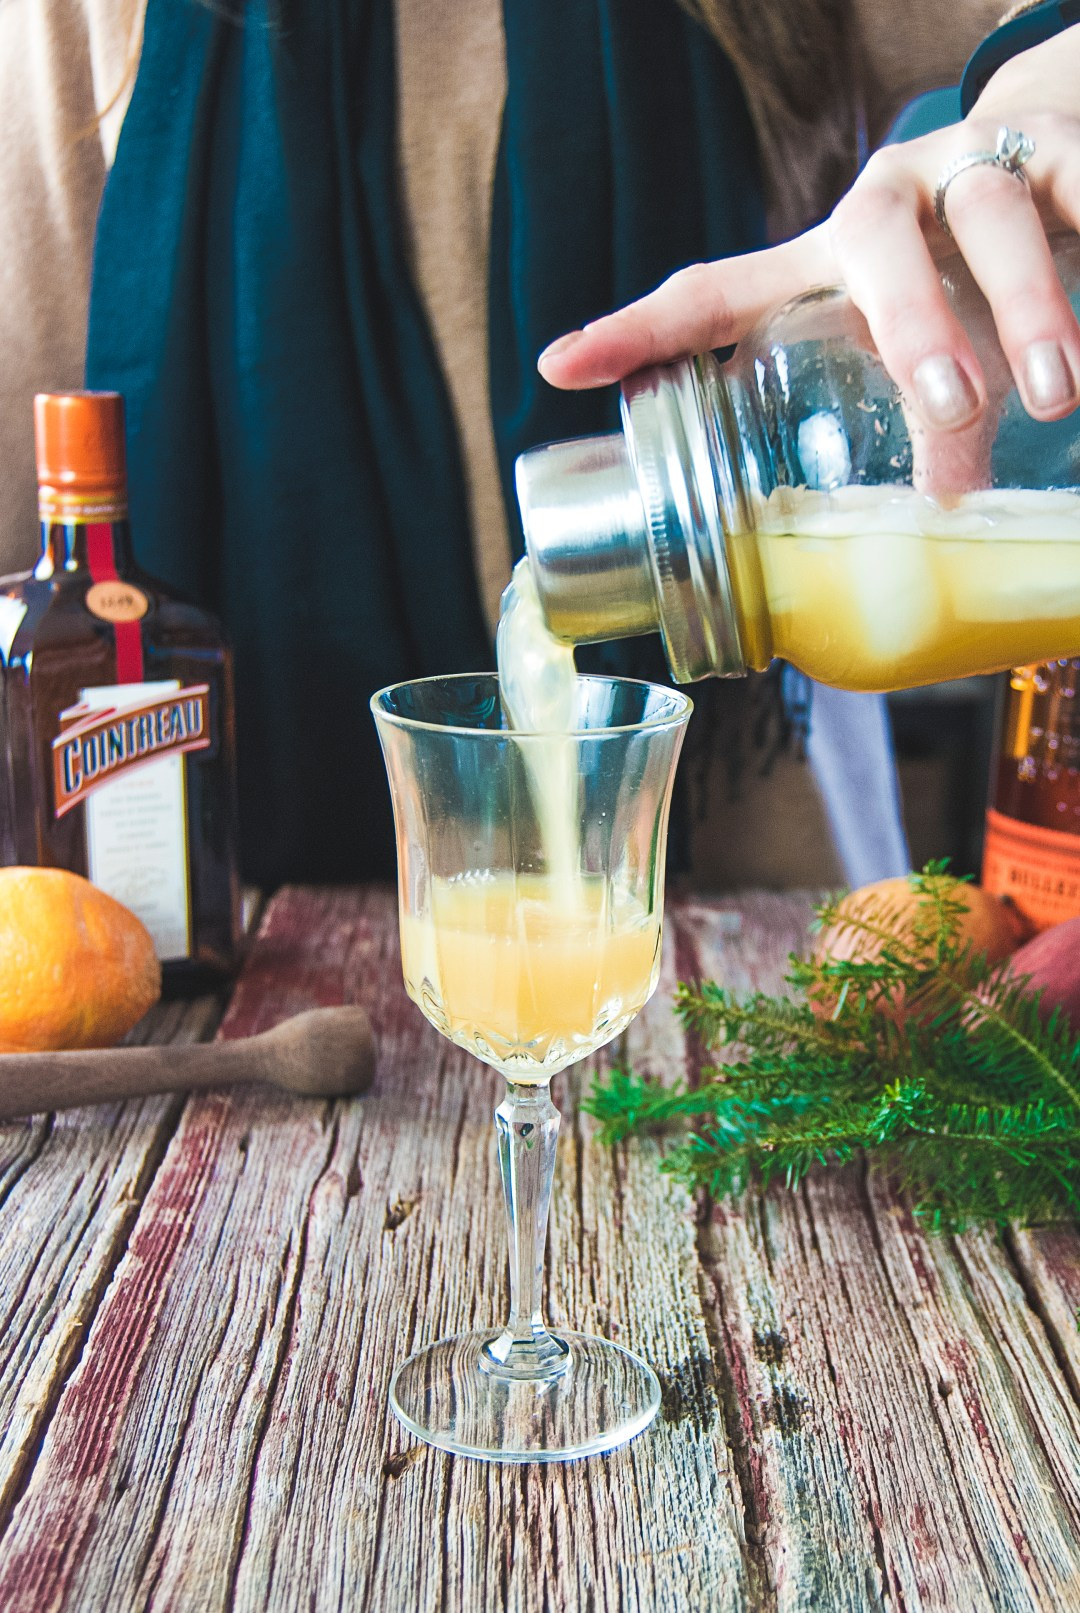 This pear cocktail is perfect for ringing in the new year, with bourbon, Cointreau, fresh squeezed orange juice, pear juice, and nutmeg.